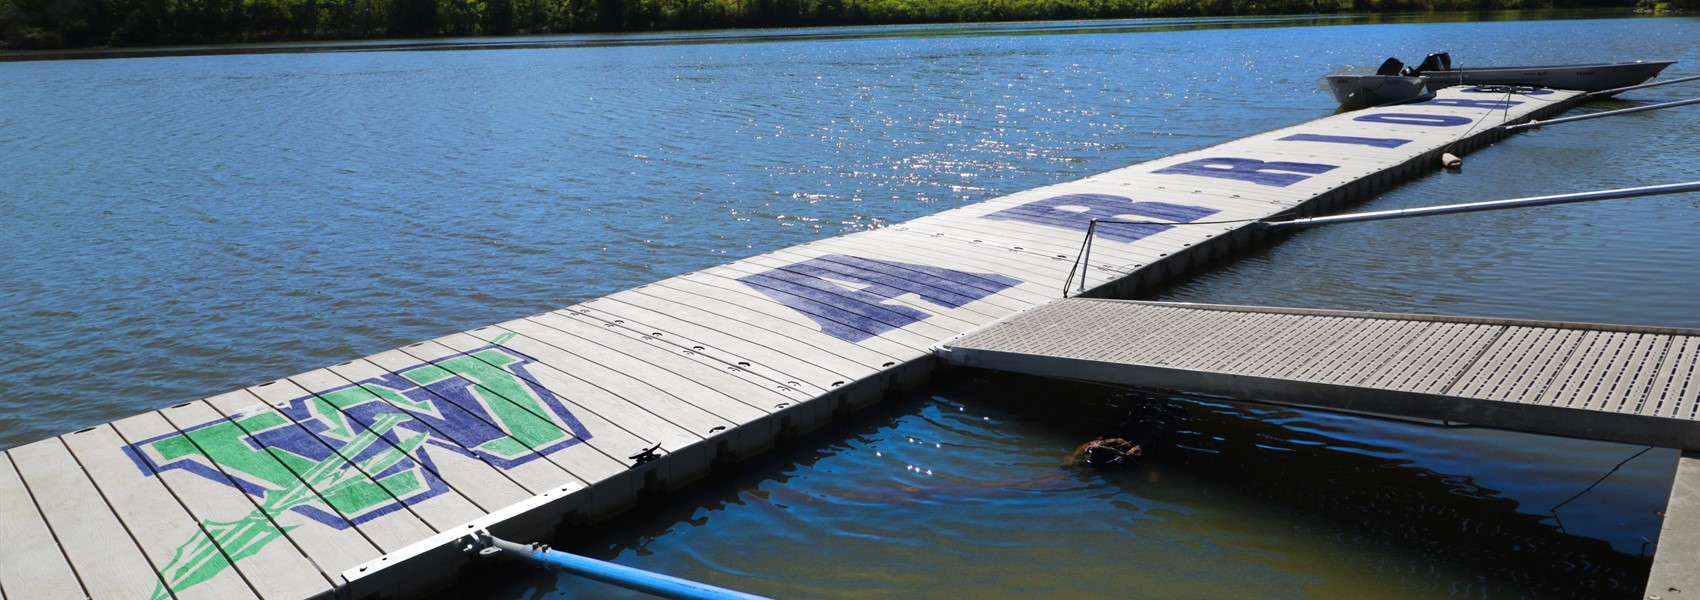 Warrior Dock for Crew at Winton Woods Lake